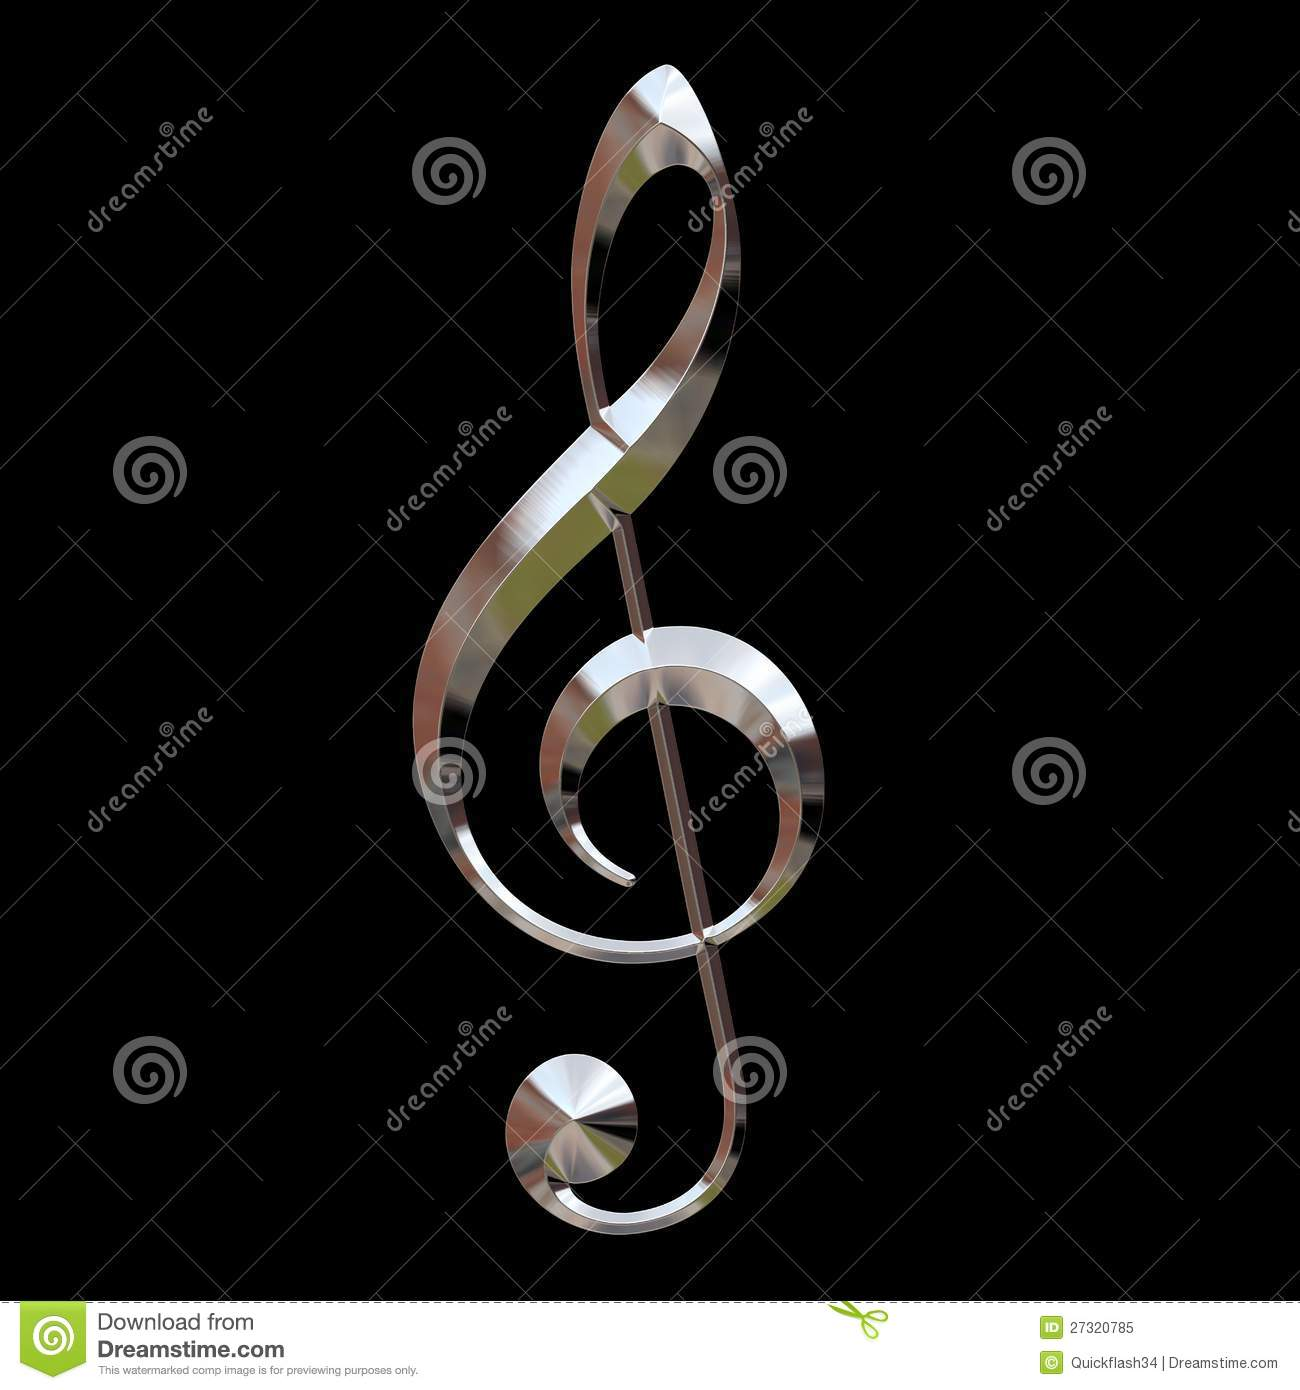 Chrom dreifacher Clef